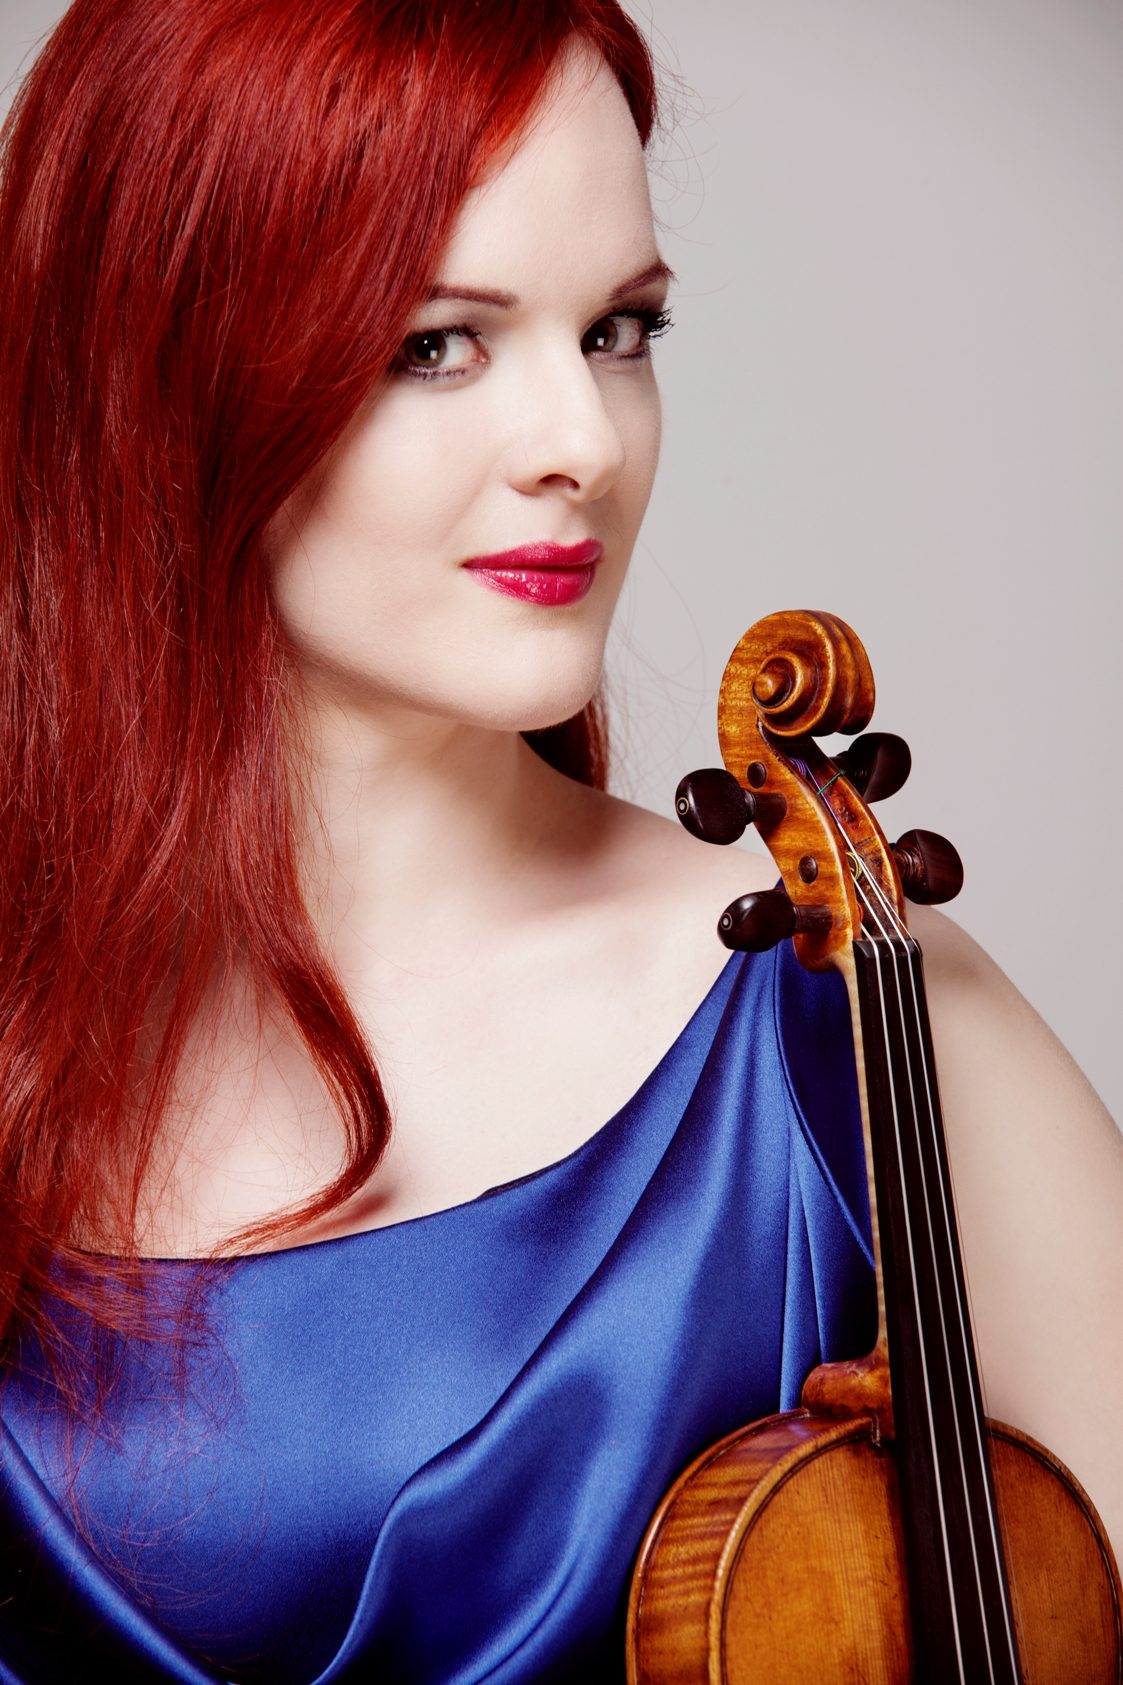 As a professional violinist, Rachel d'Alba has had the privilege of working and collaborating with the best and most celebrated international orchestras, conductors and musicians.